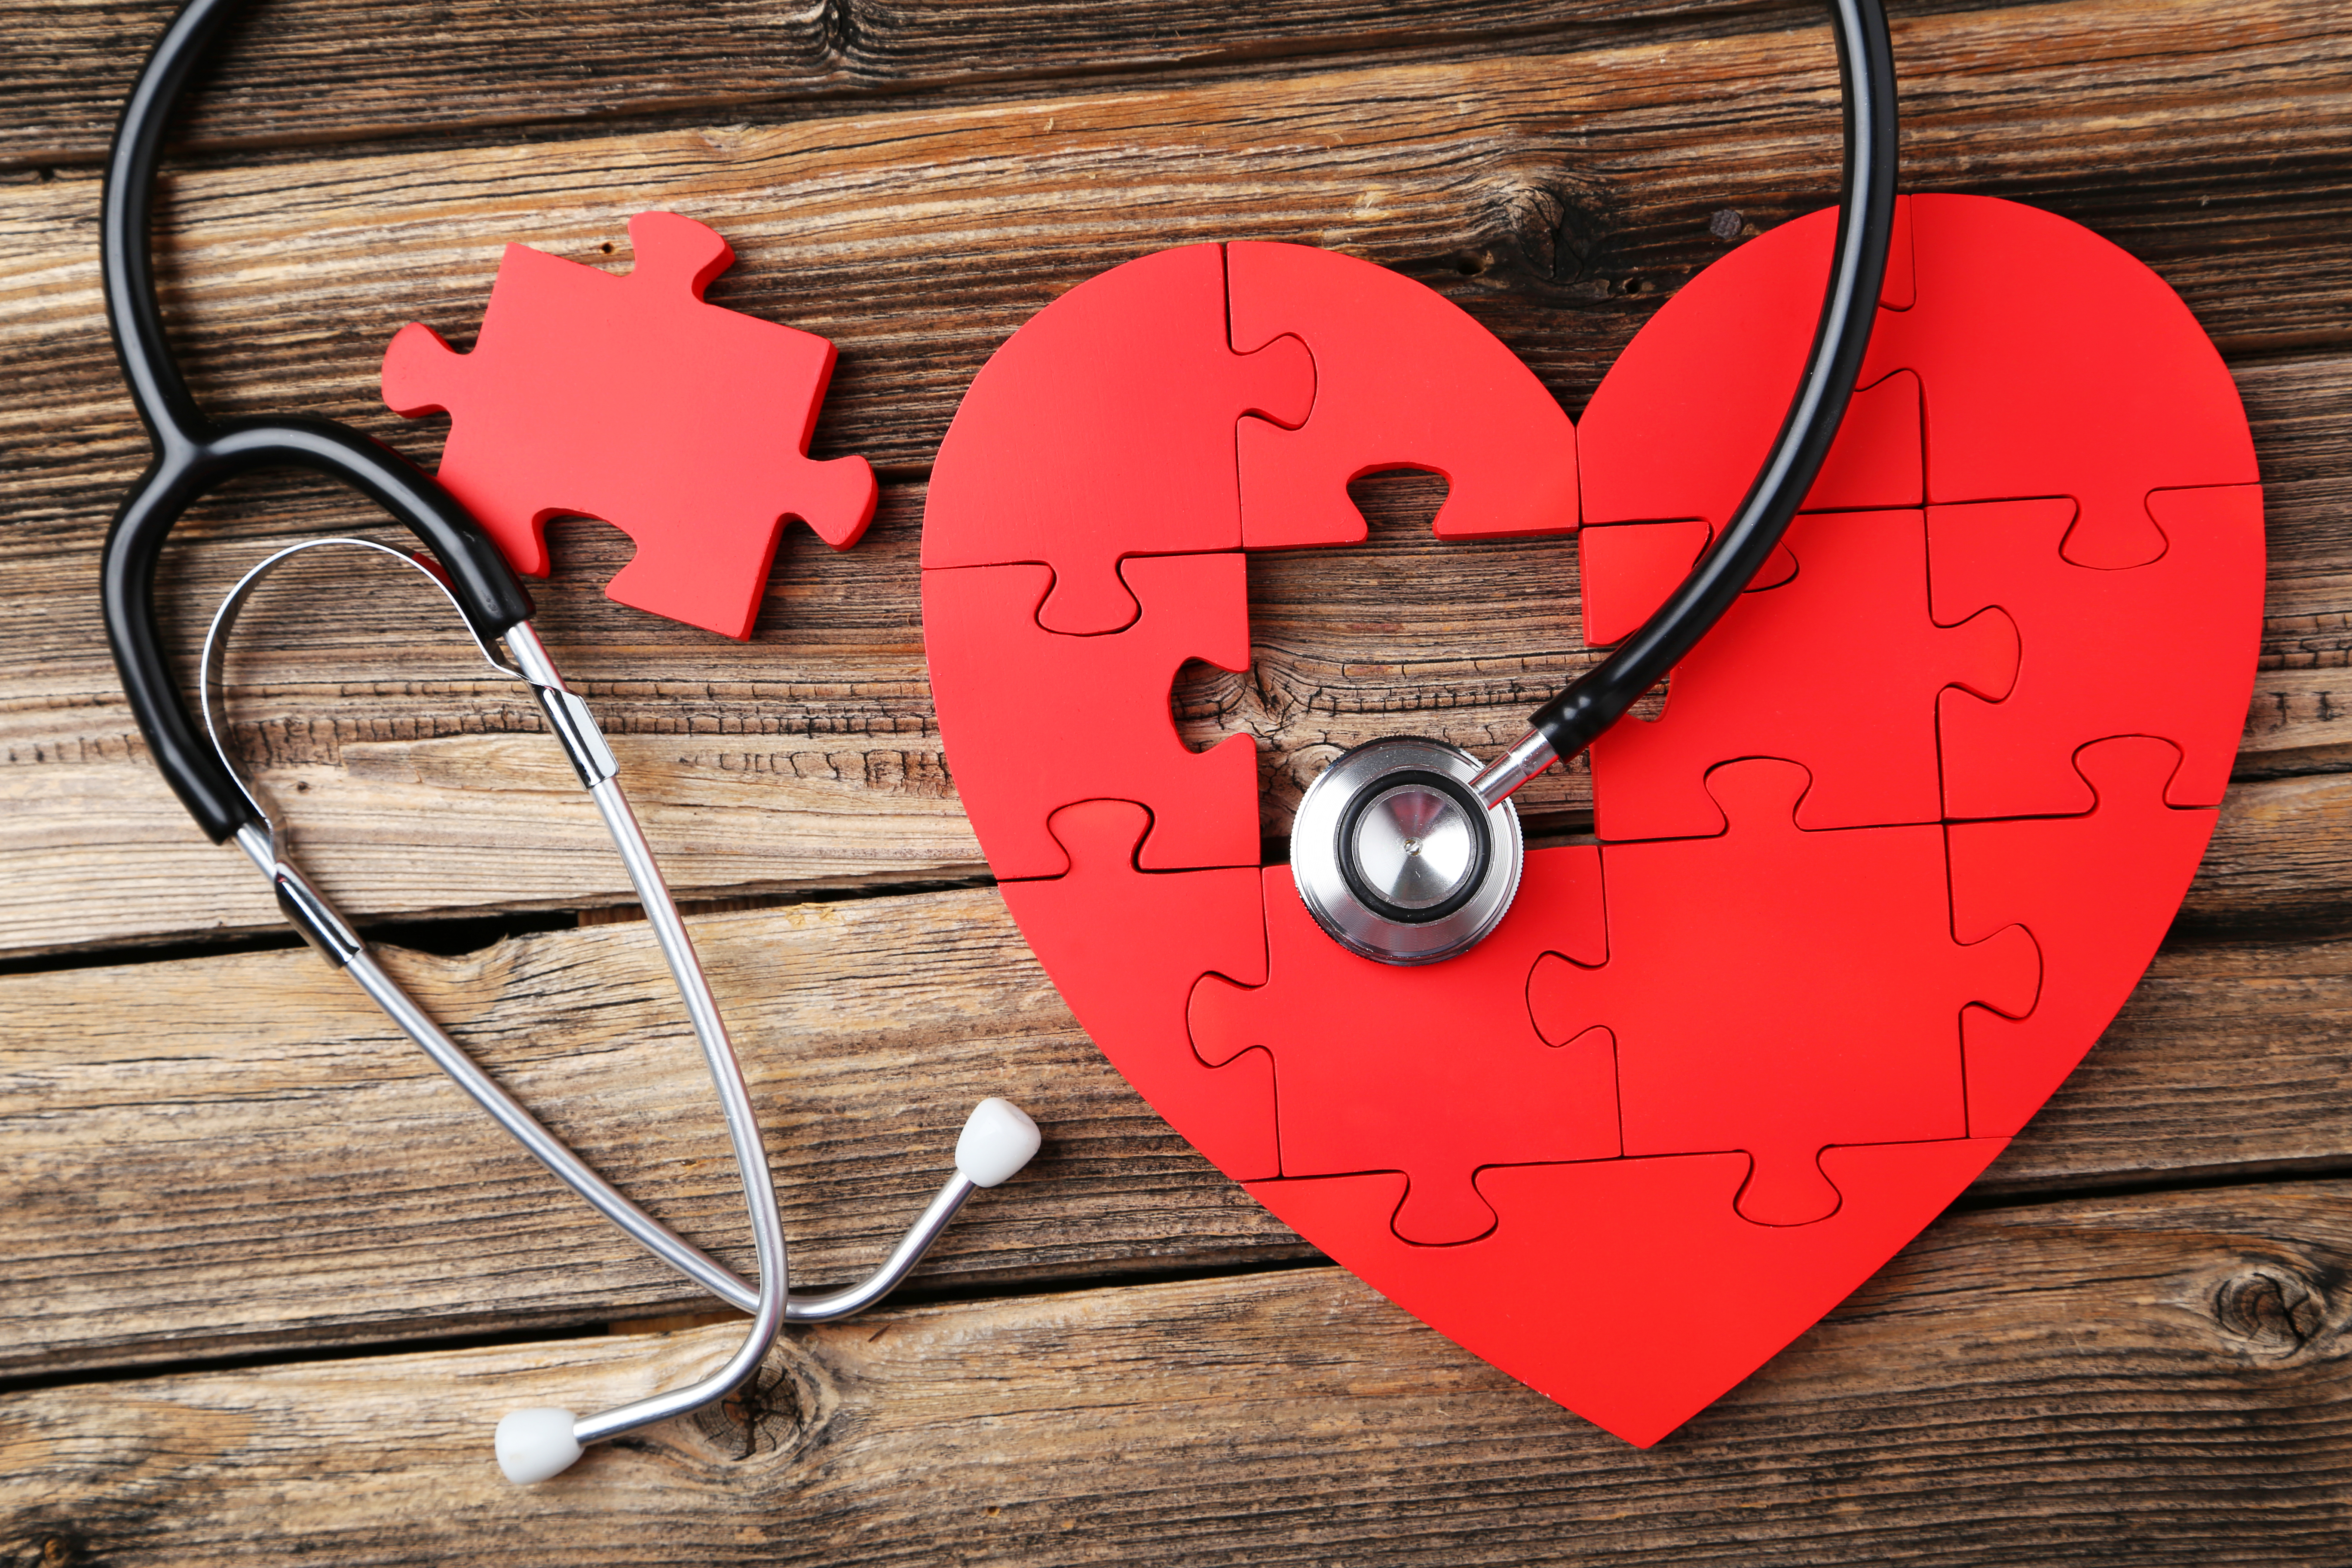 a red heart-shaped puzzle and a stethoscope on a rough wooden surface